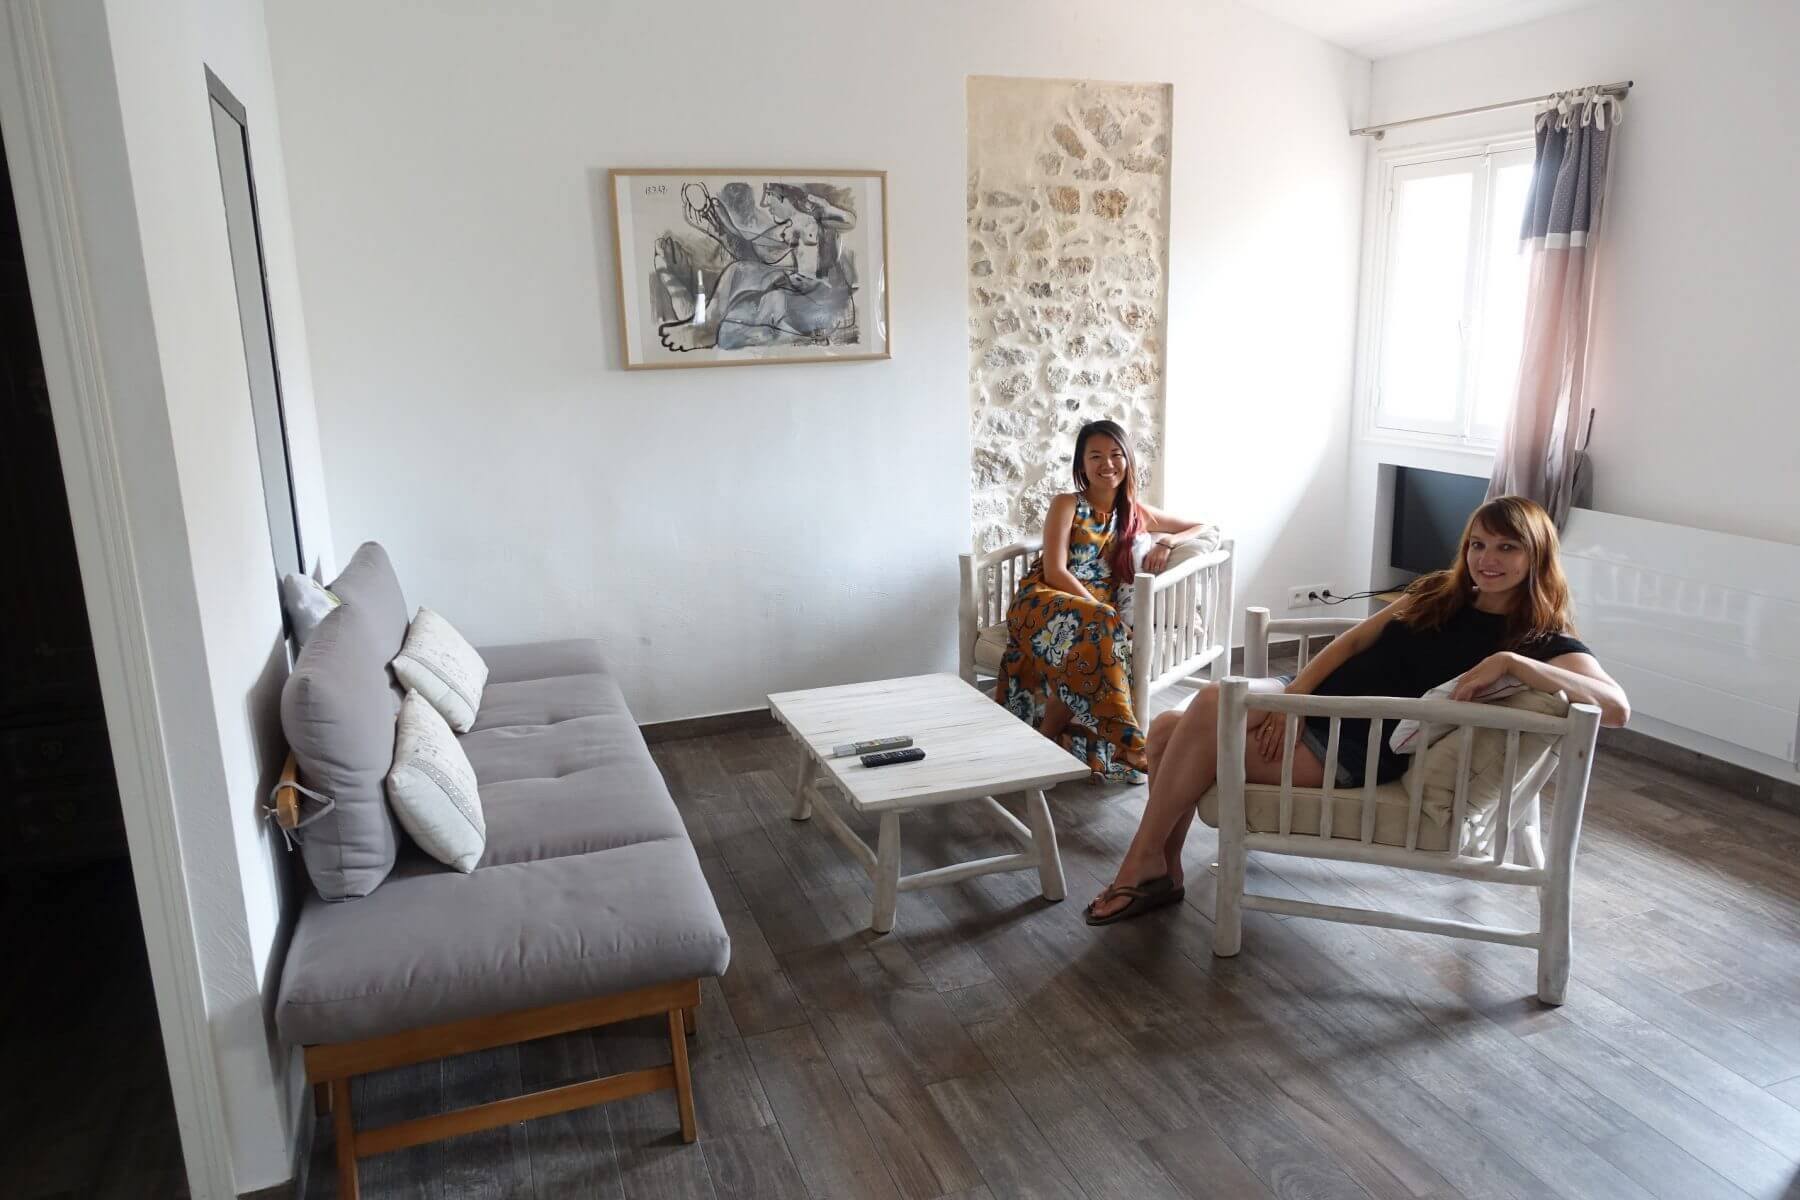 Our Airbnb in Antibes Was Full of Natural Light